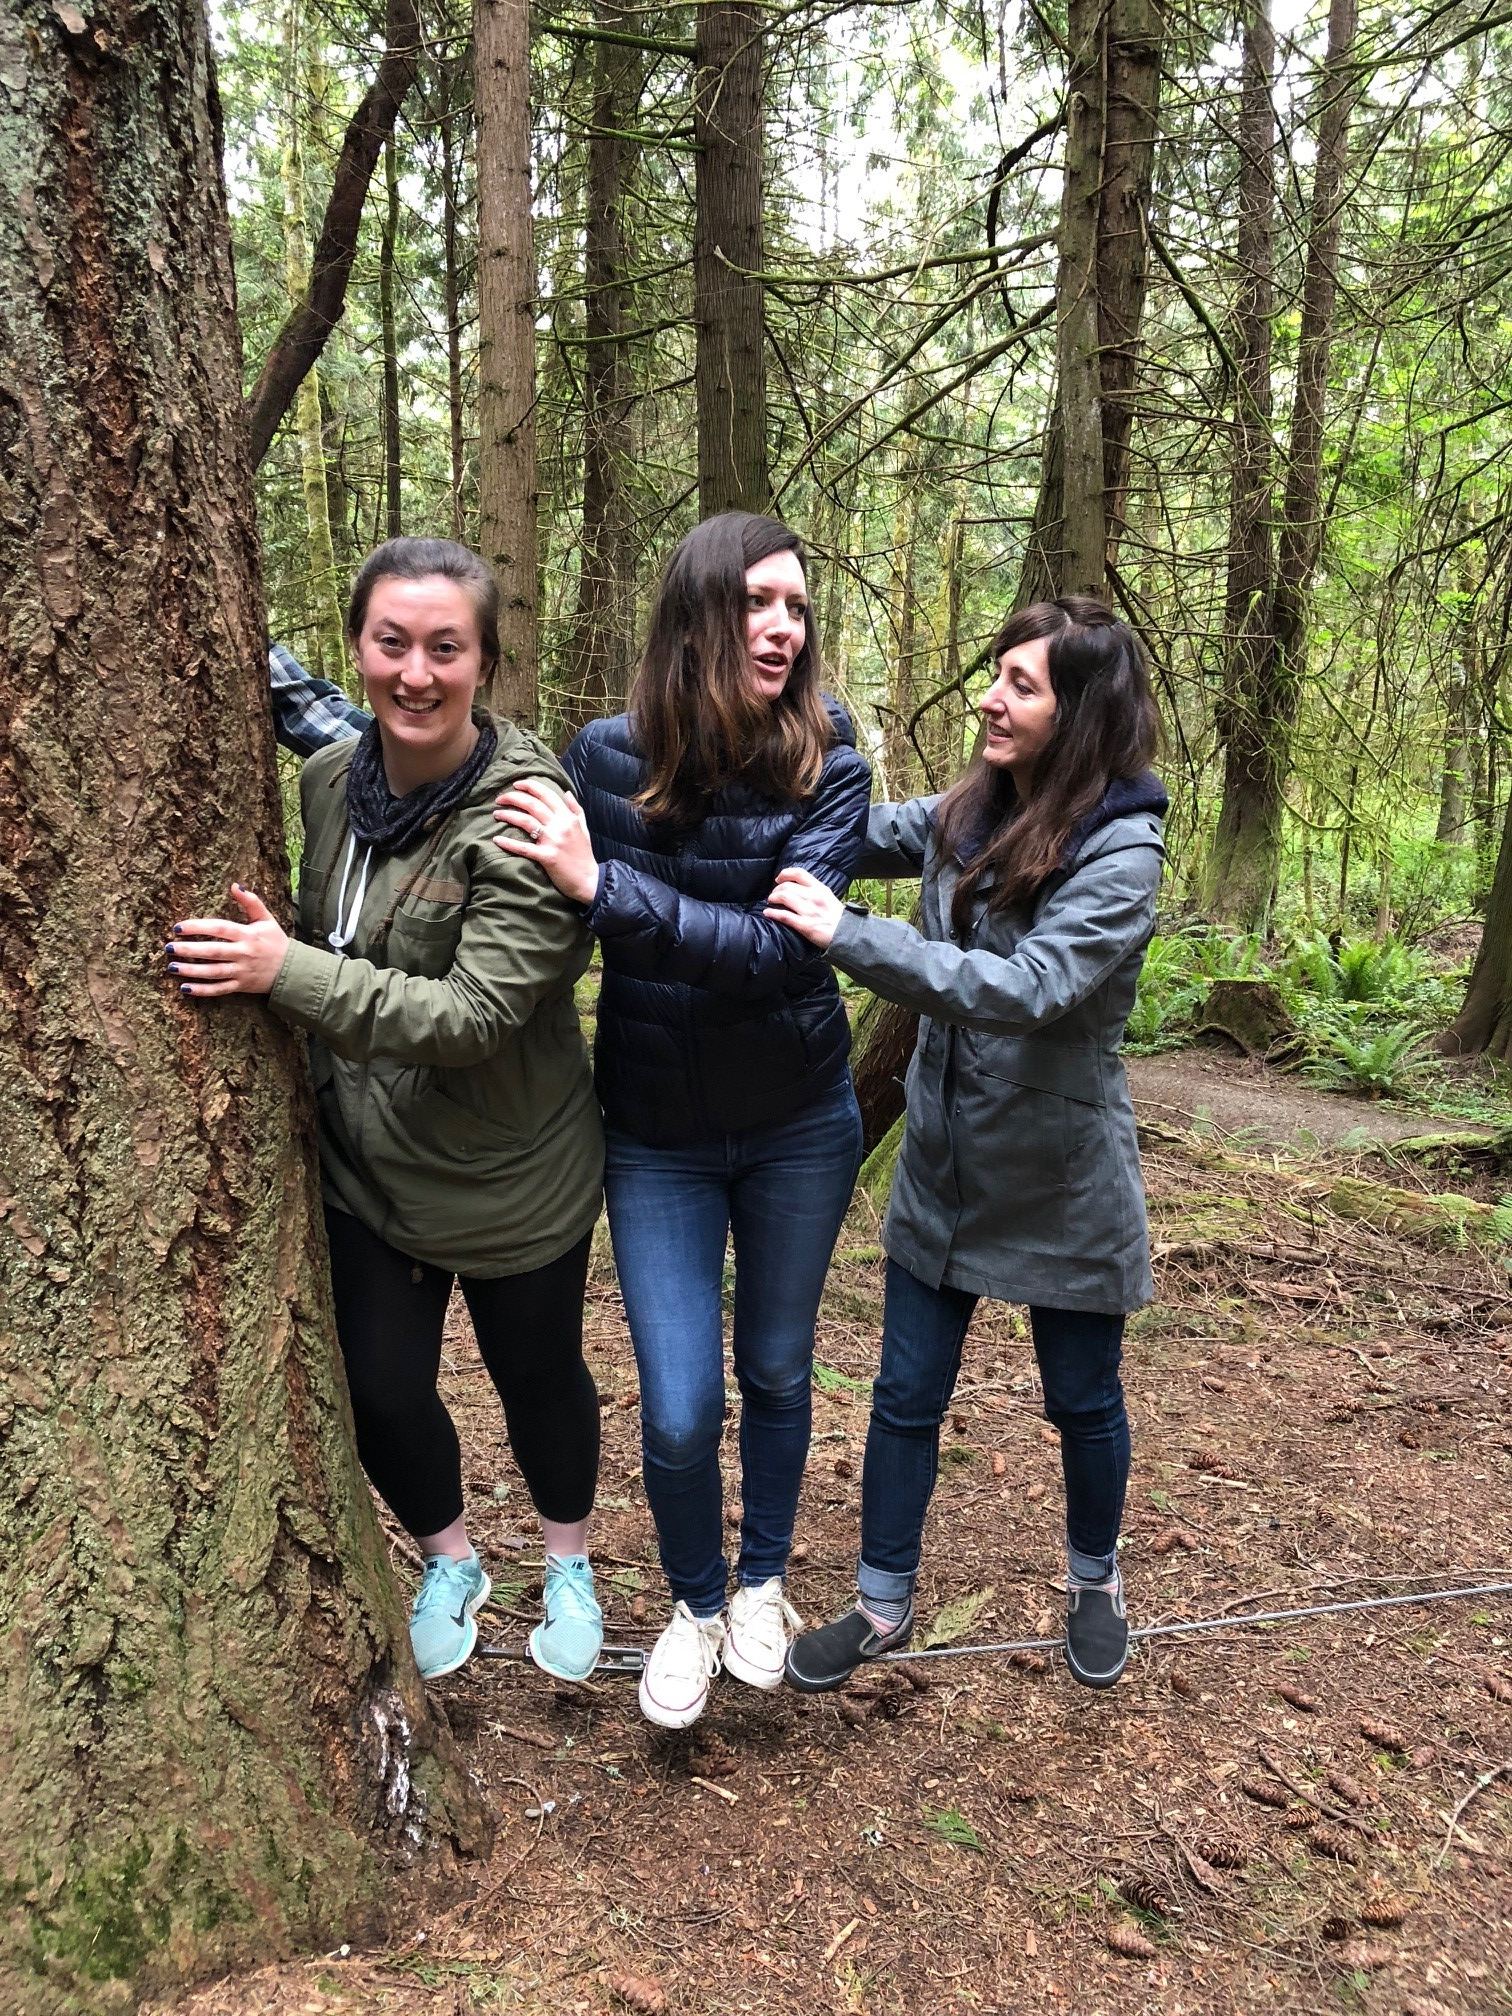 Debate at the low ropes course